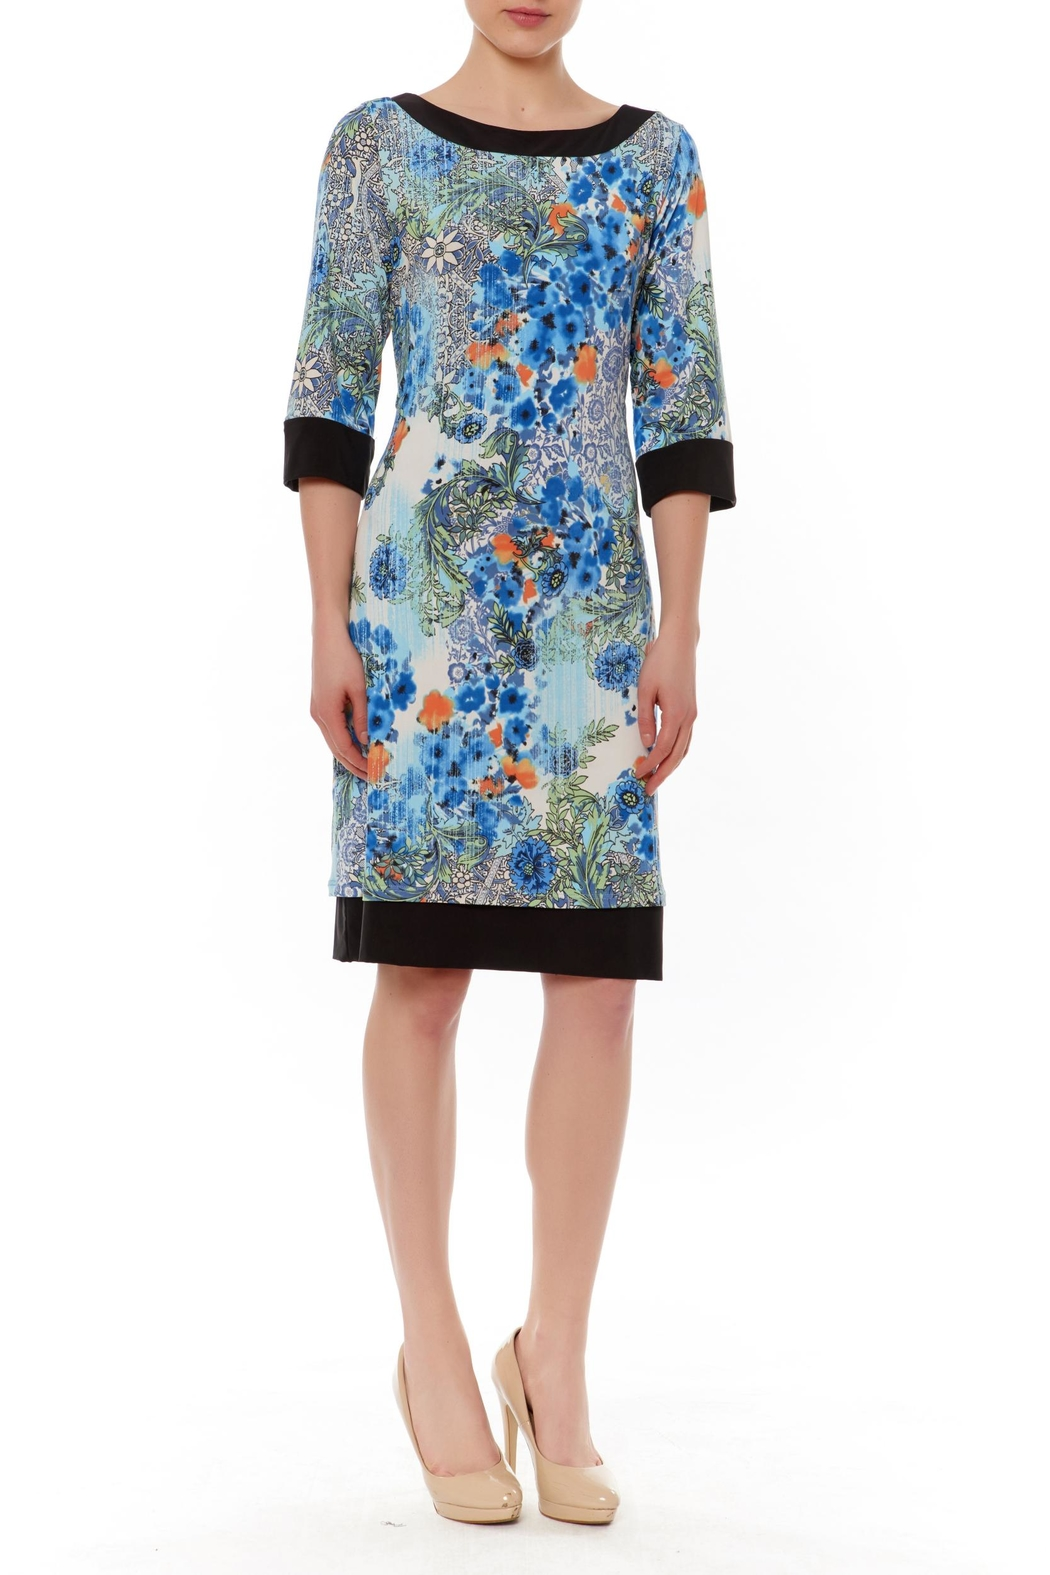 PAPILLON BLANC Reversible Shift Dress - Main Image